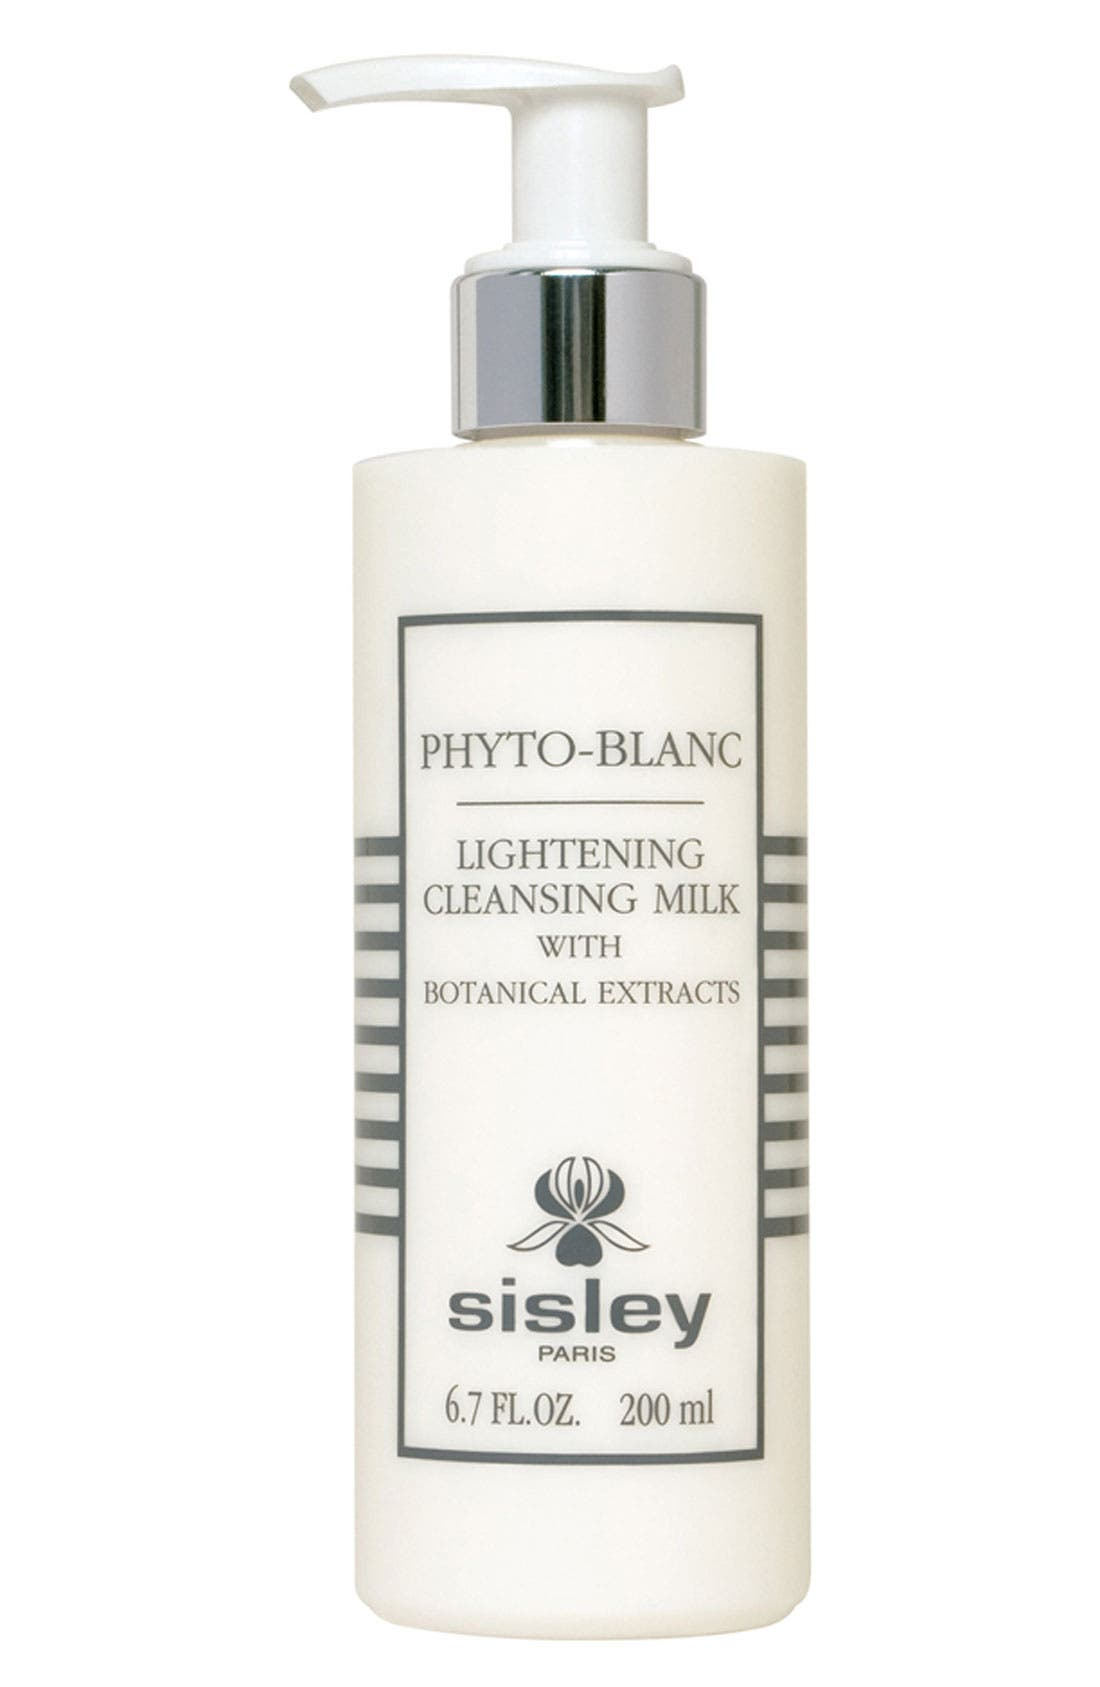 Phyto-Blanc Lightening Cleansing Milk with Botanical Extracts,                             Main thumbnail 1, color,                             NONE